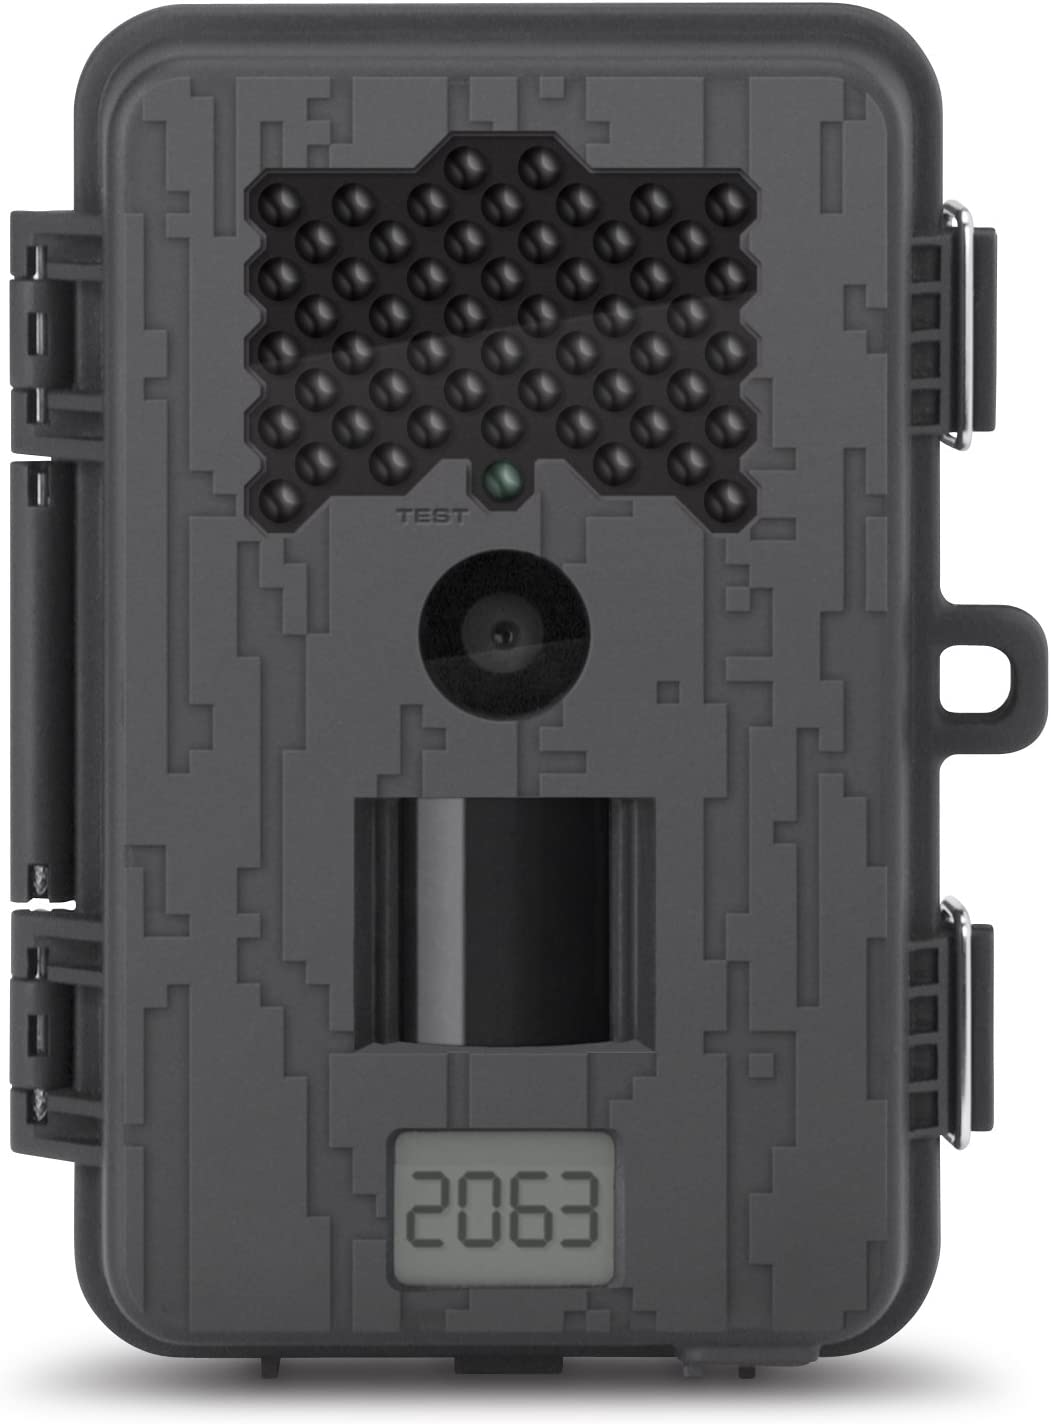 Stealth Cam Digital Scouting Camera w processor Digi ZX7 Ca We OFFer at cheap prices Bargain 8mp